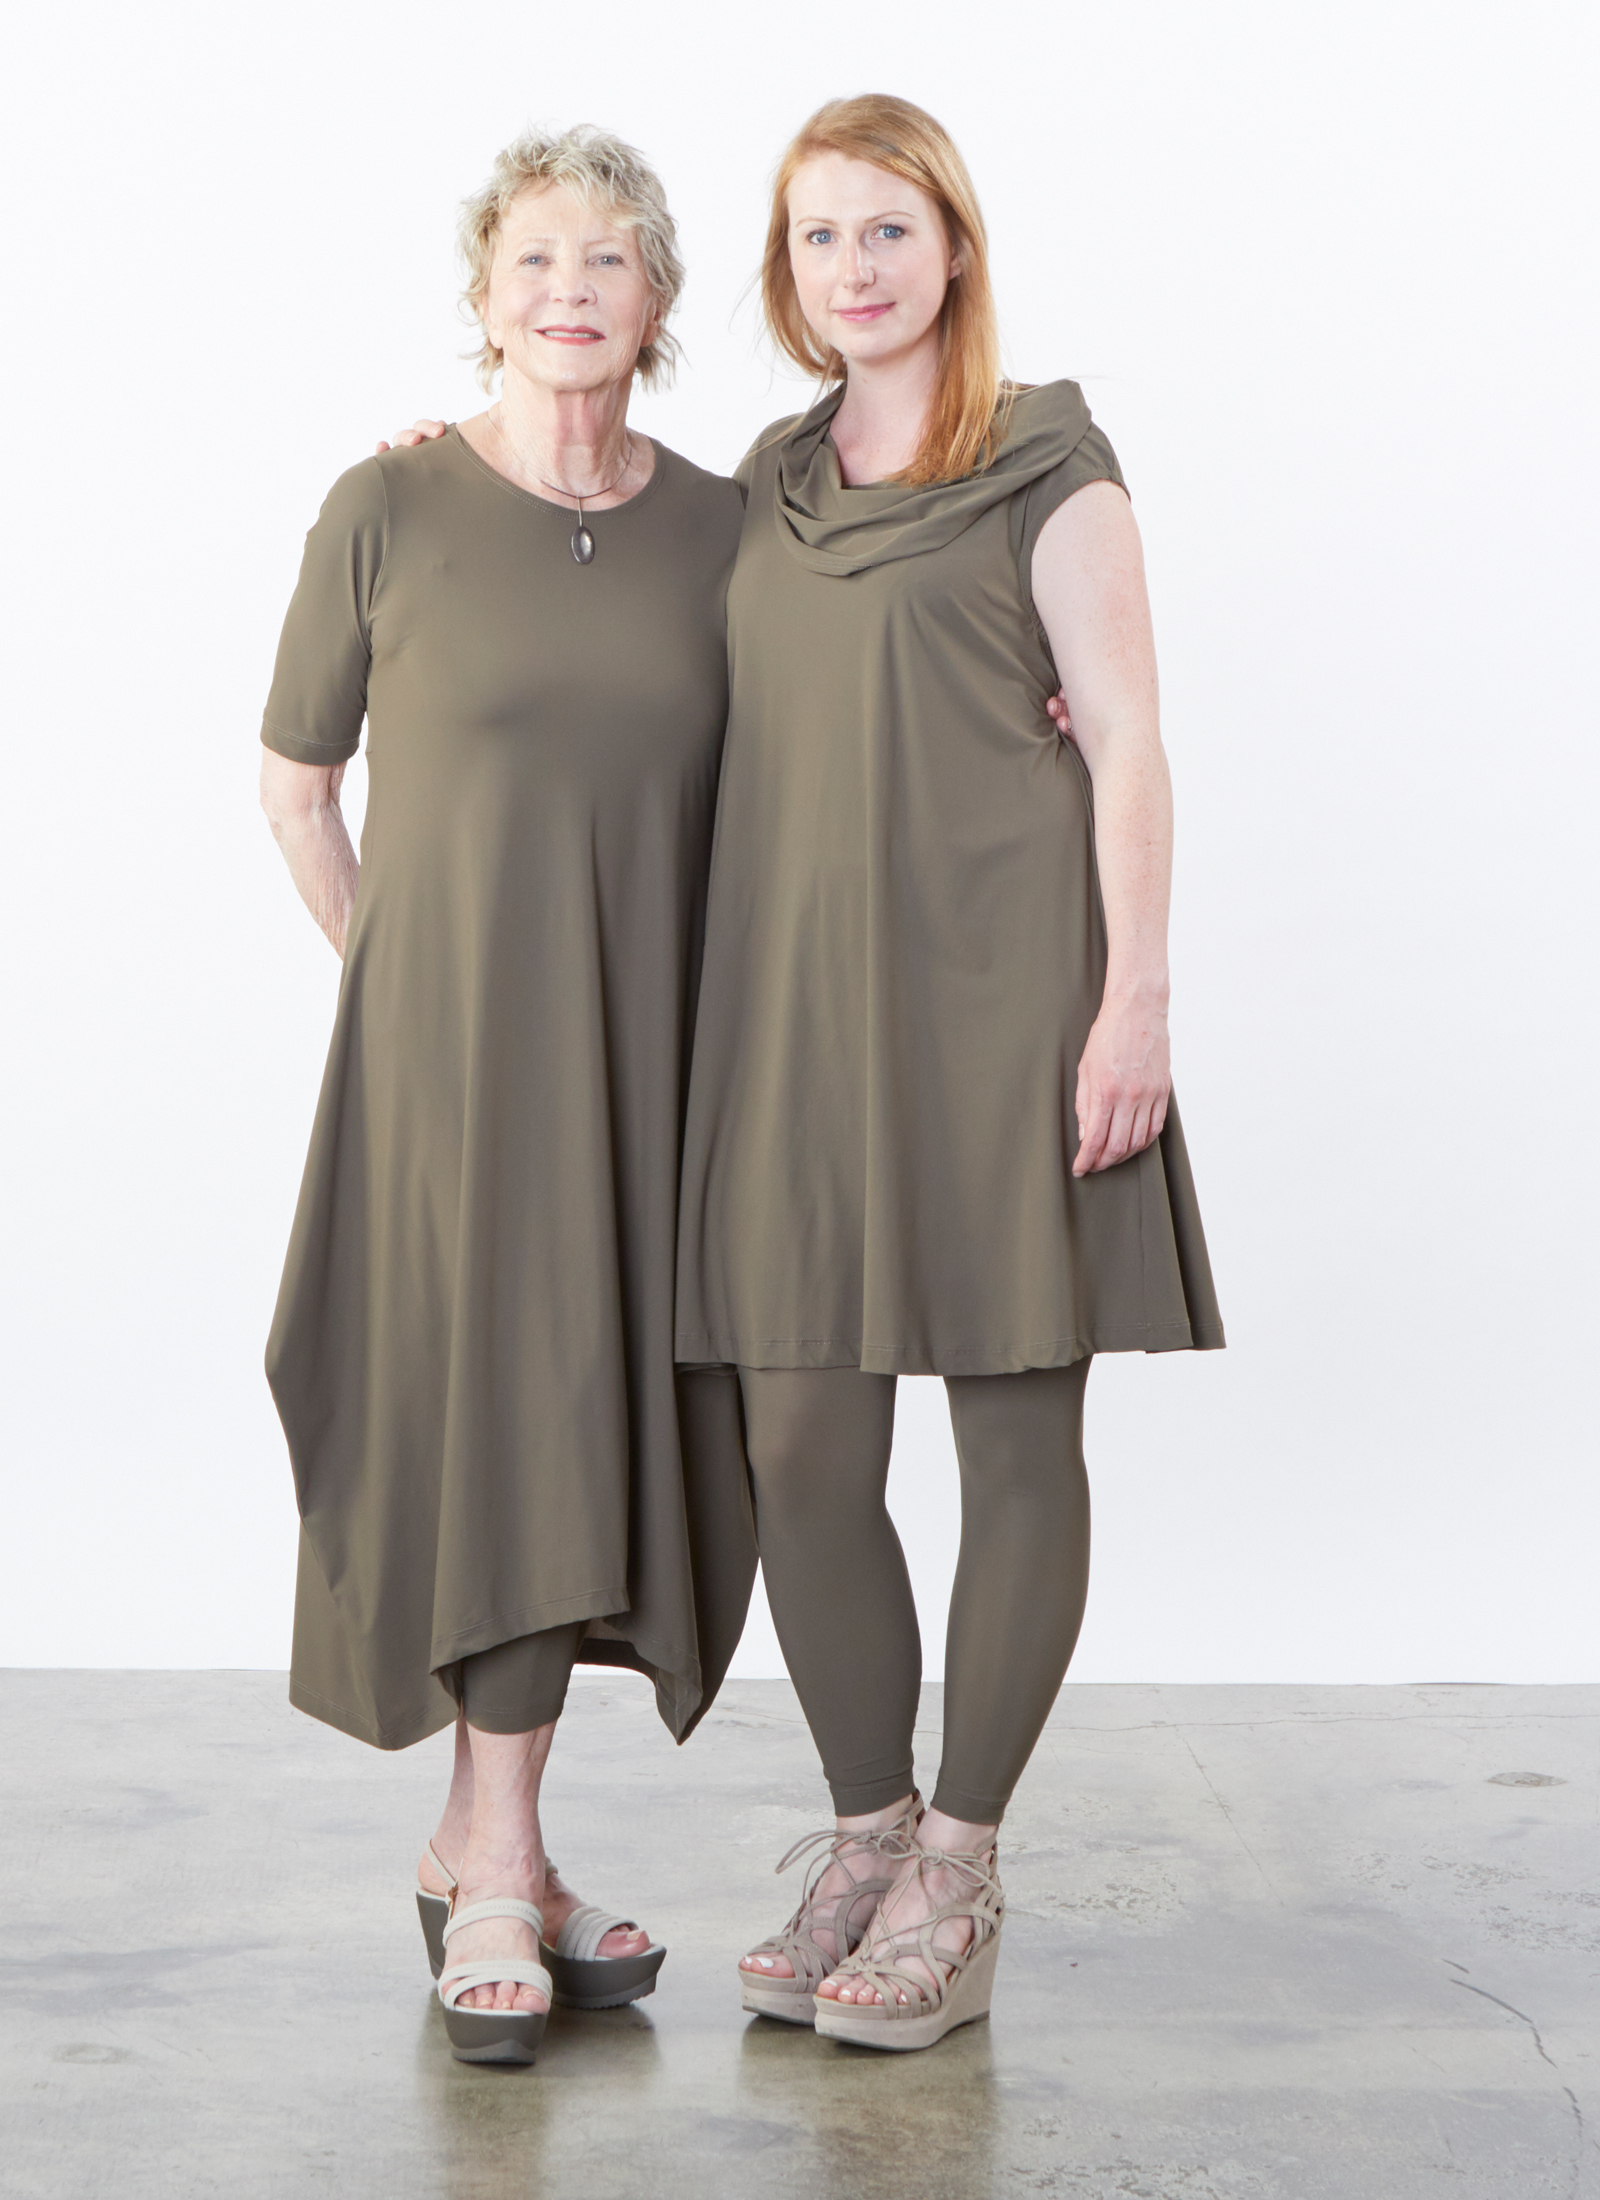 S/S Chelsea Dress, Nolan Tunic, Legging in Olive Microfiber Jersey